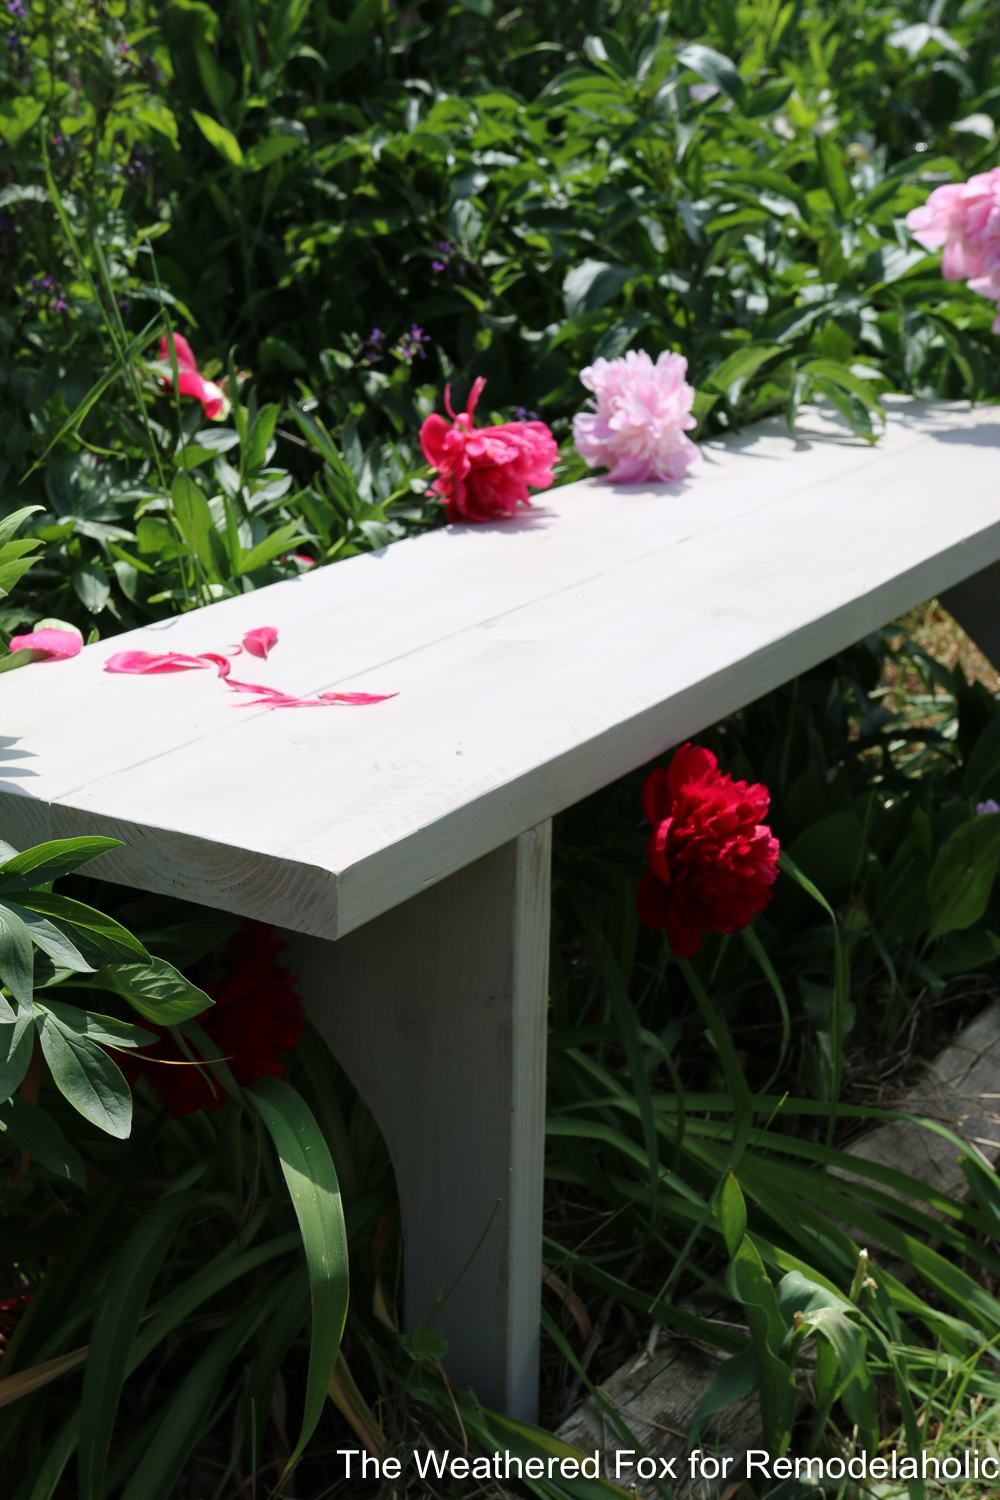 How to build an easy and inexpensive farmhouse bench from just TWO BOARDS! Full tutorial on Remodelaholic.com